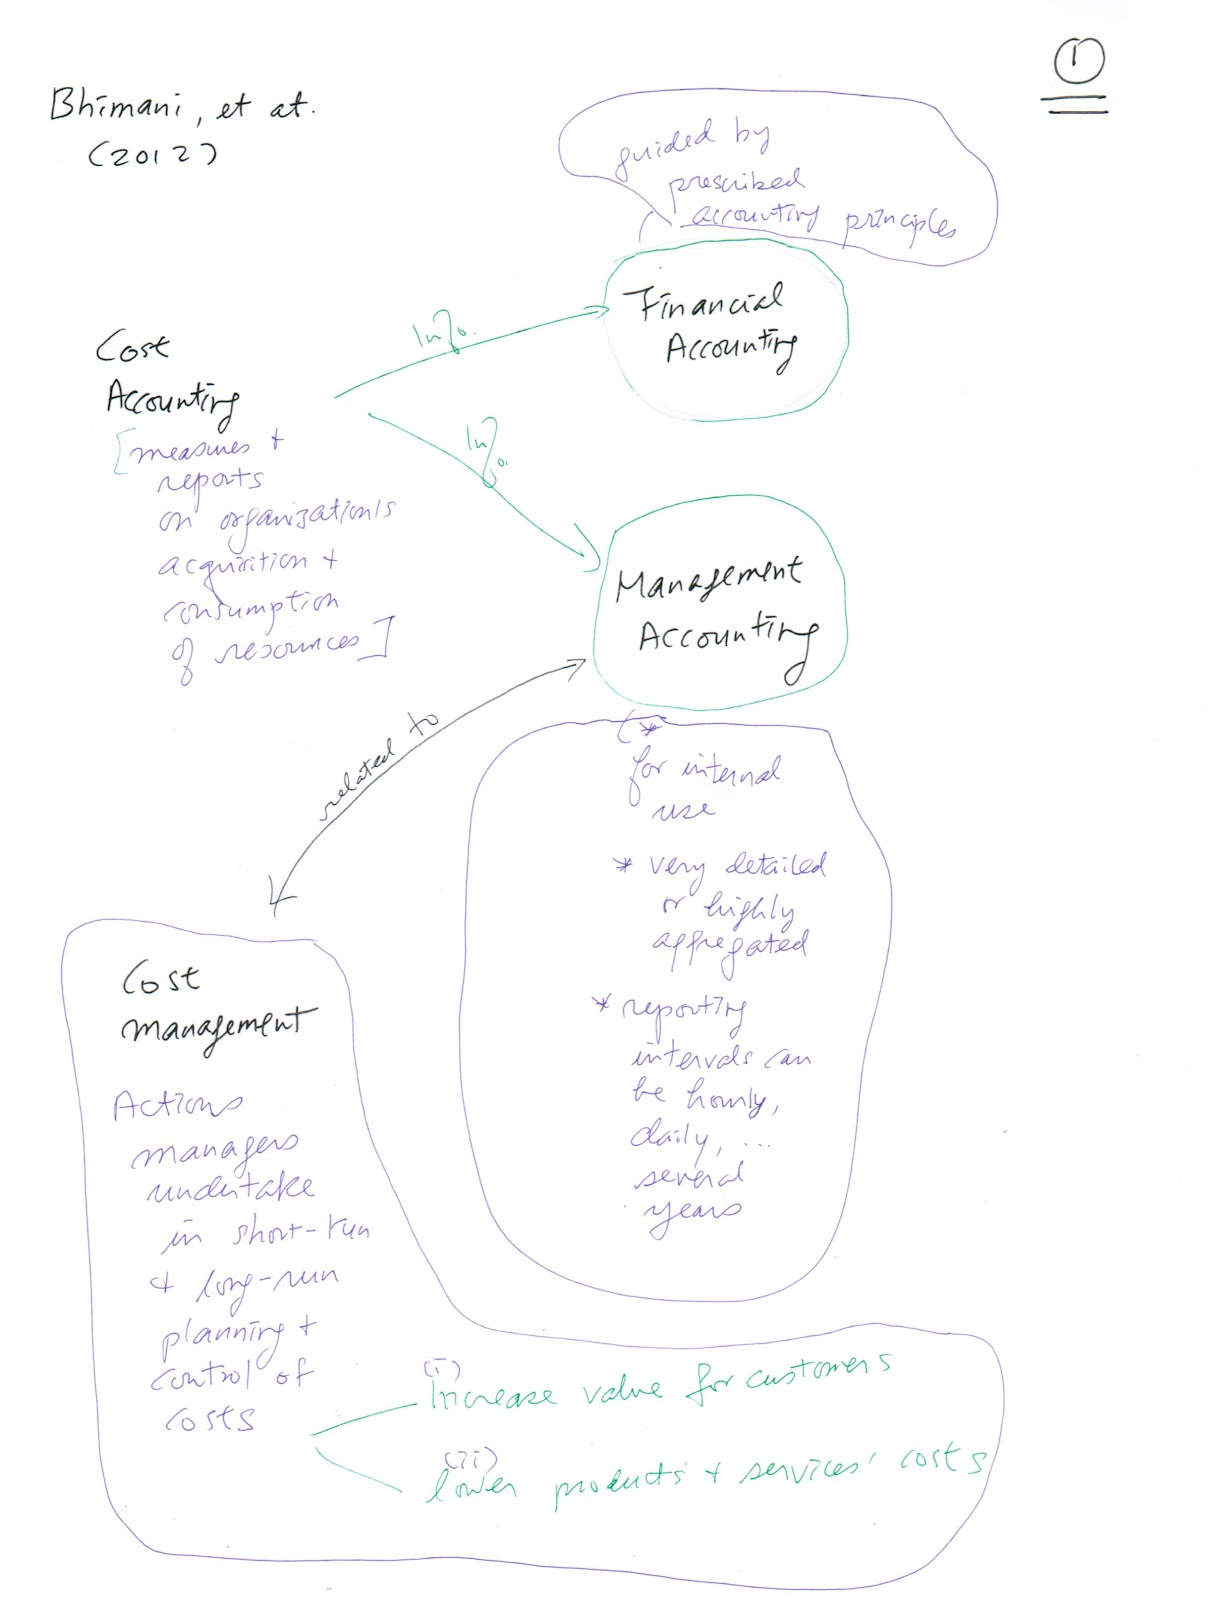 Strategic Management Accounting session 1 notes